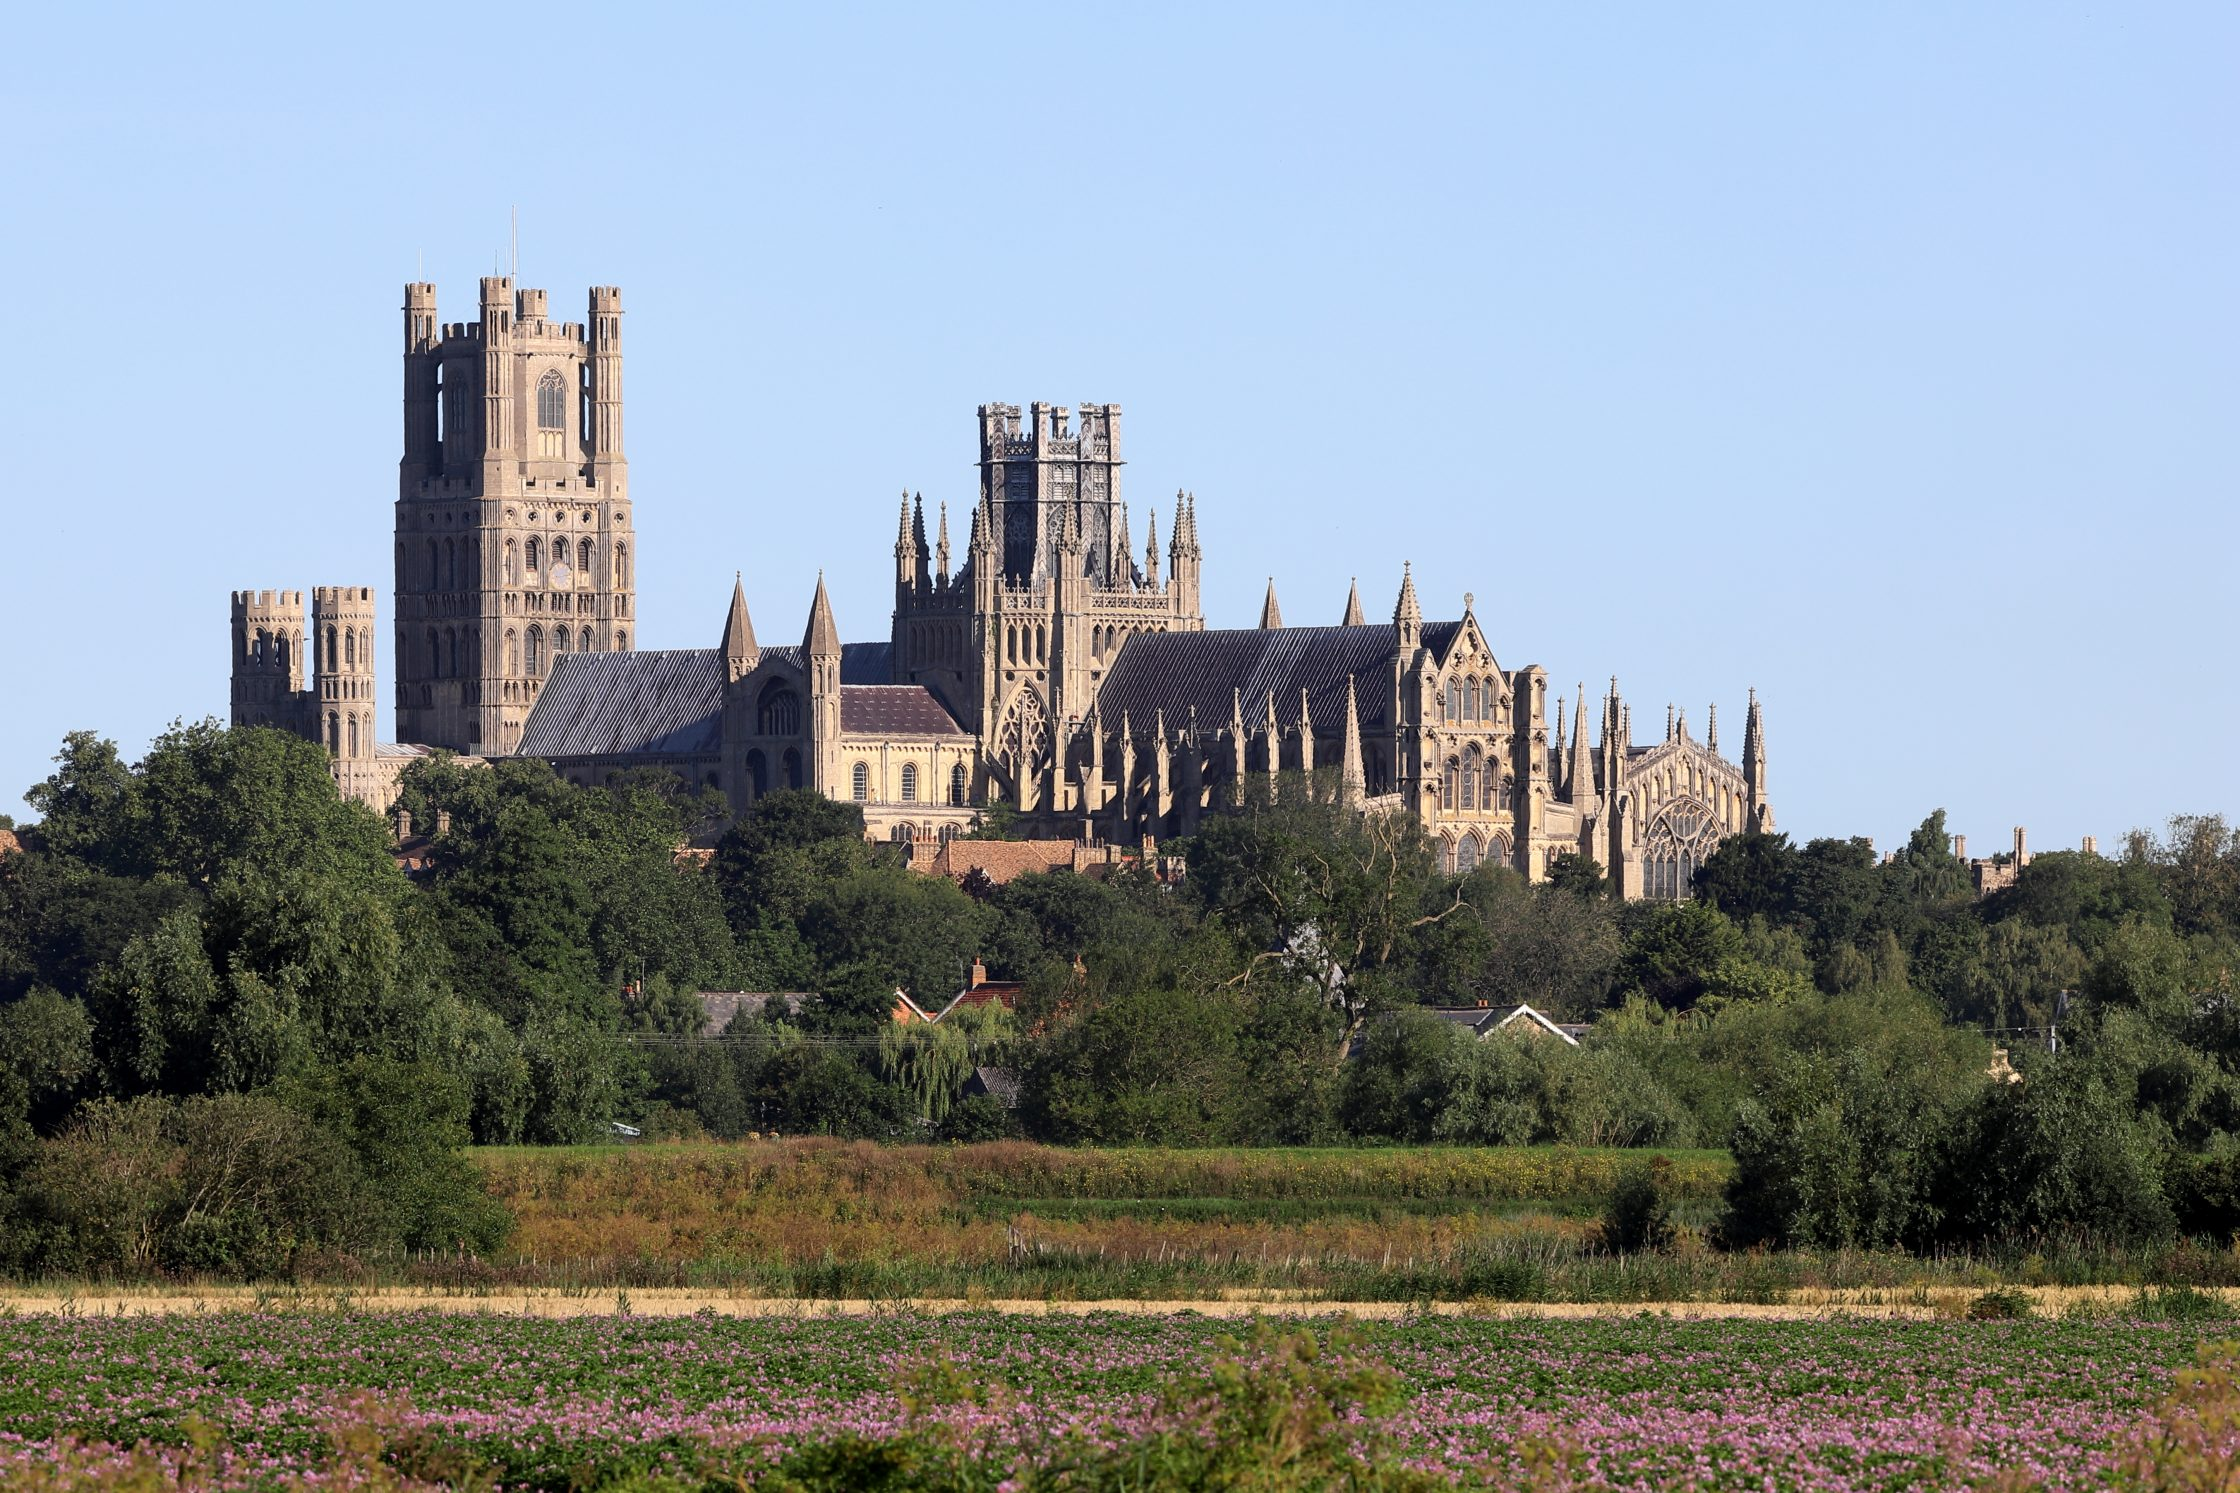 Ely_Cathedral_from_Quanea_Drove_F